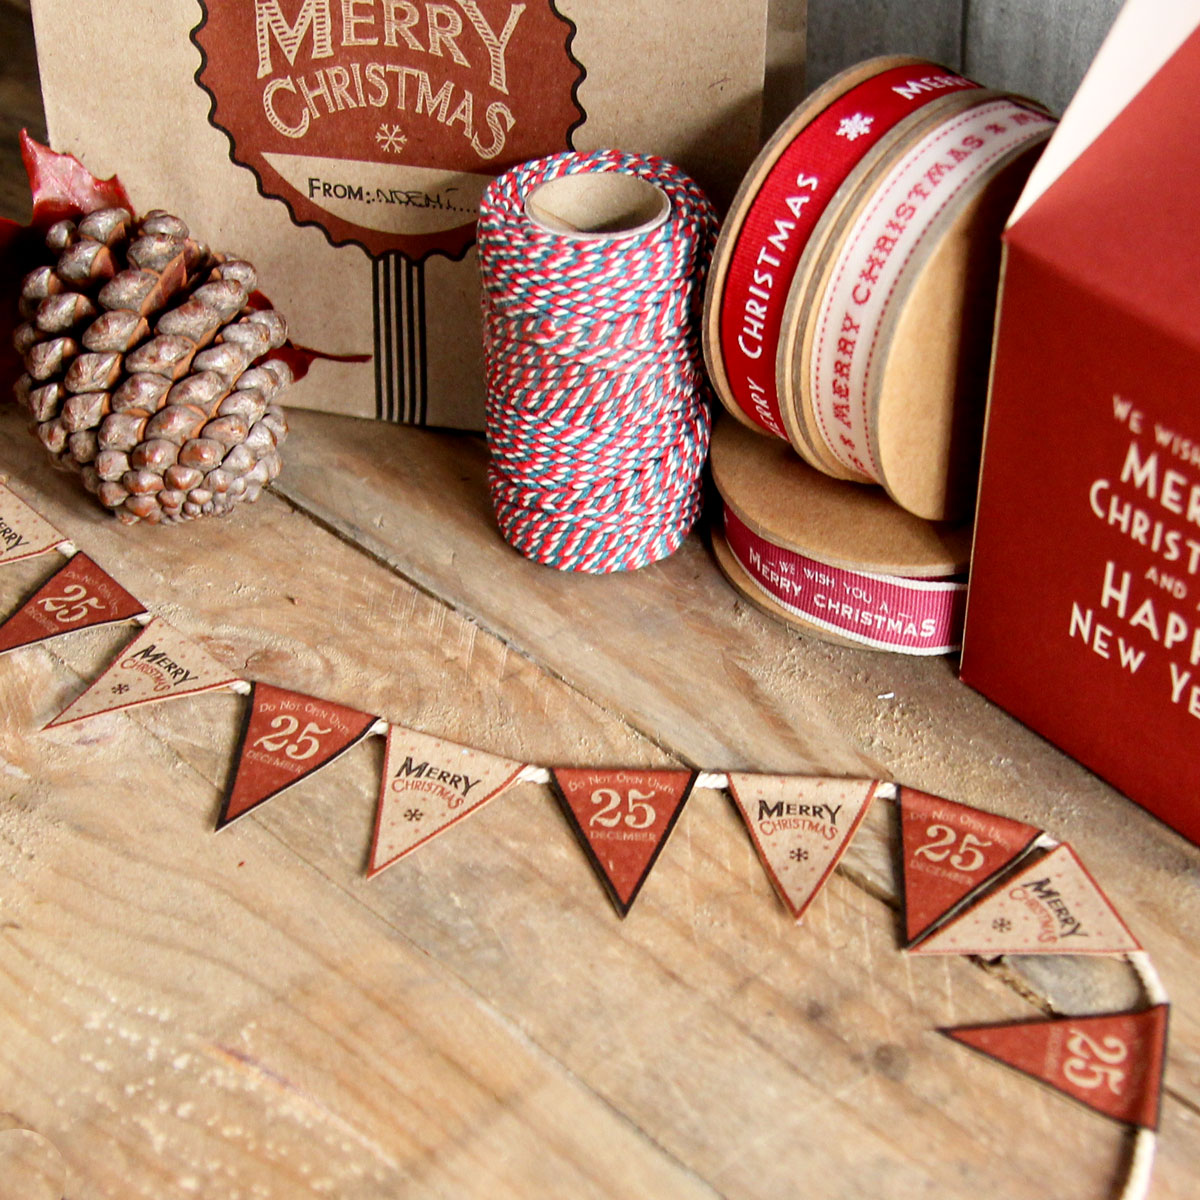 Mr_wonderful_shop_decoracion_navidad_2014_068